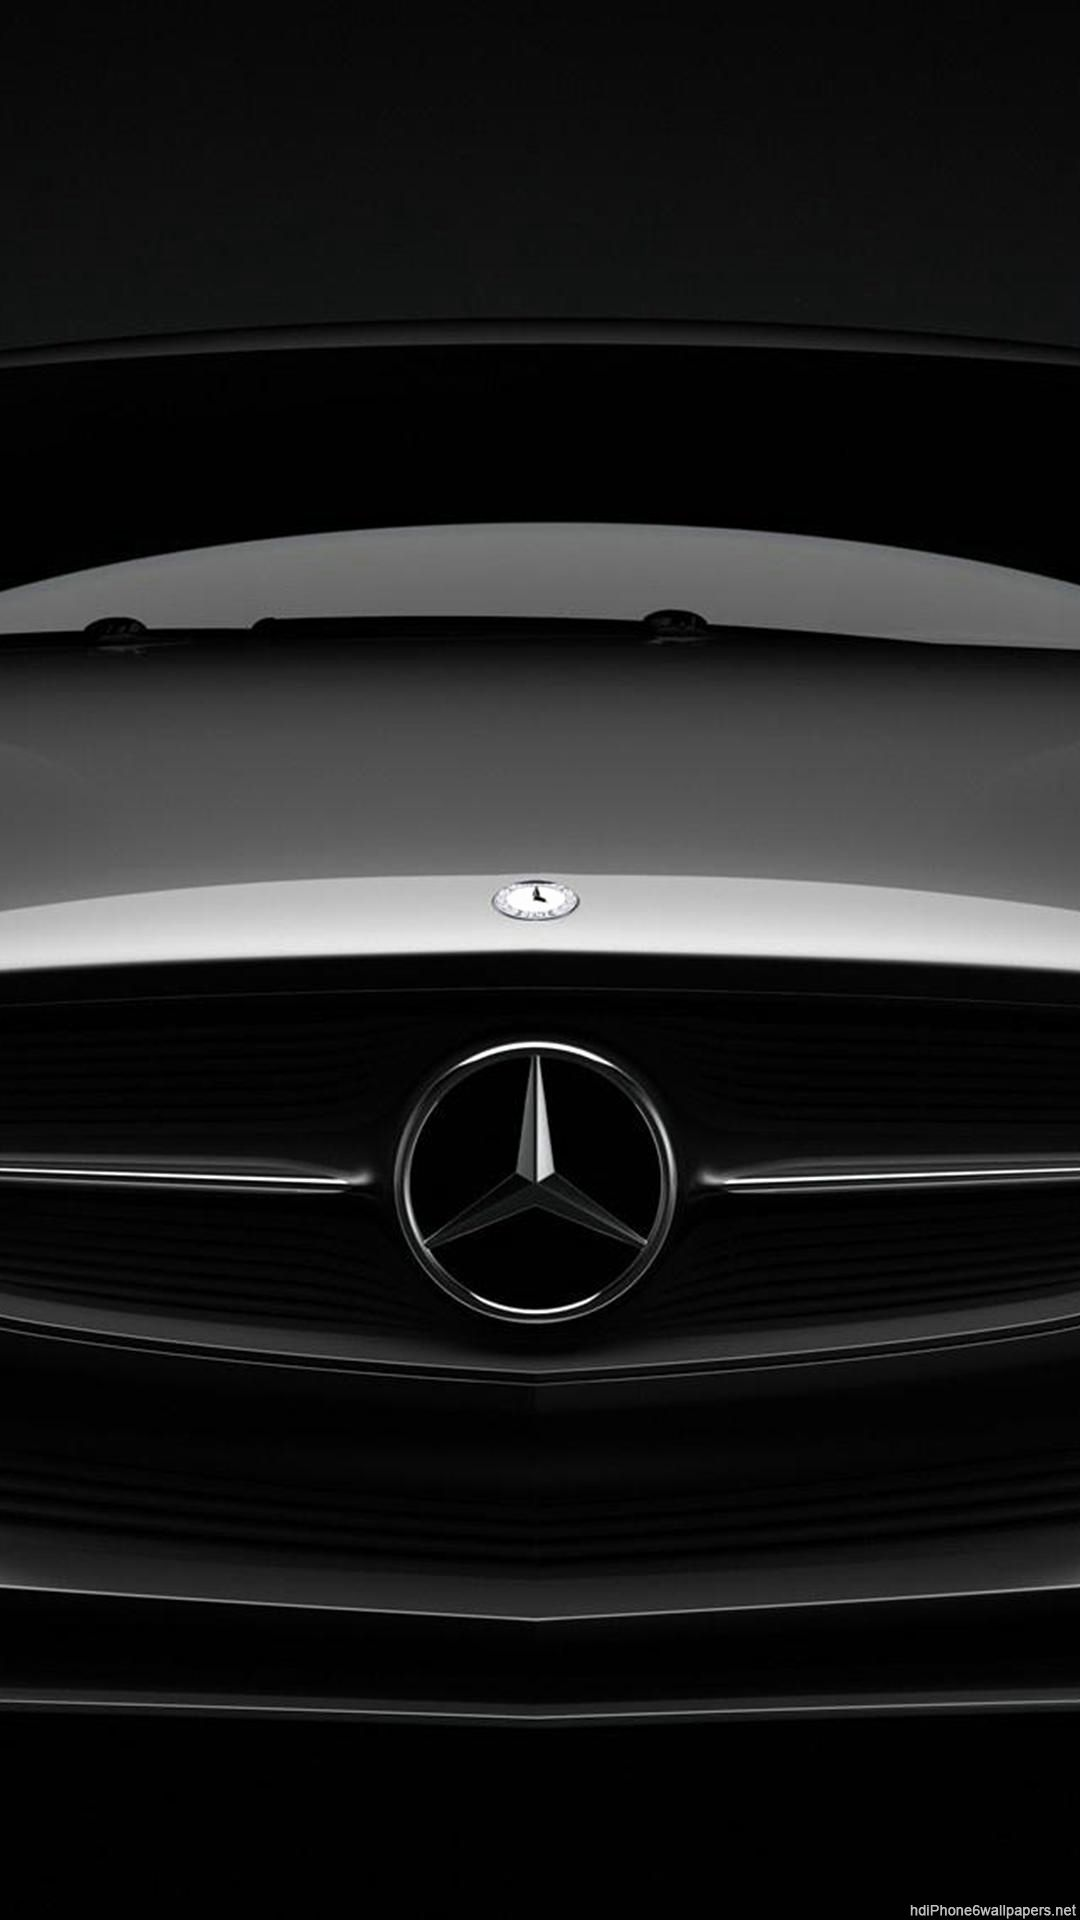 Iphone Car Wallpaper Hd Lovely Mercedes Car Iphone 6 Wallpapers Hd